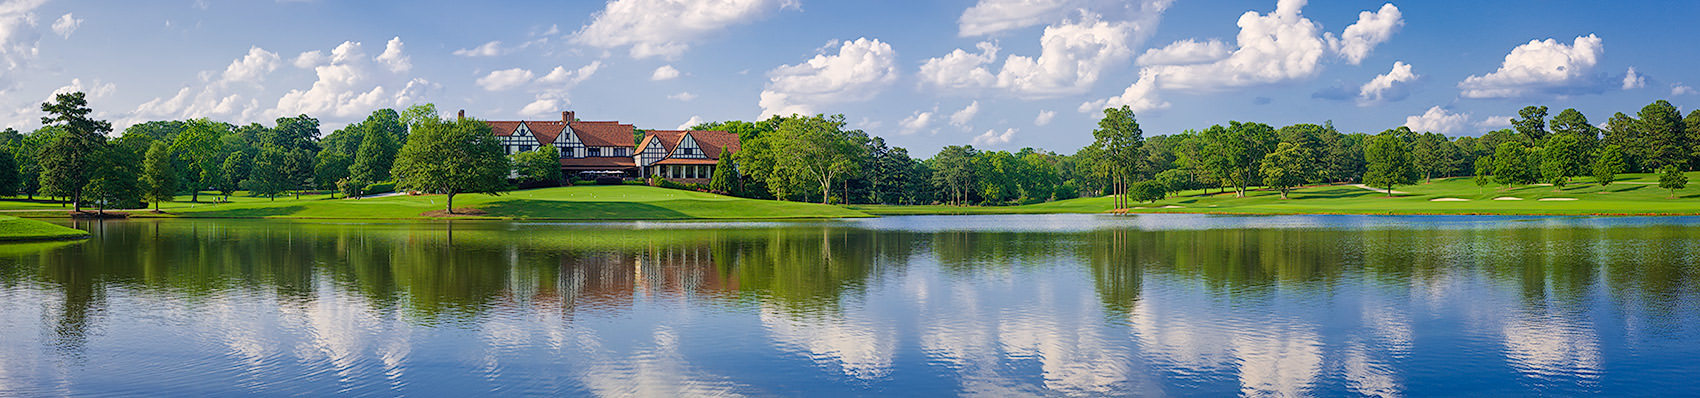 <div class='title'>           East Lake Golf Club, Atlanta, Georgia         </div>                 <div class='description'>           The classic clubhouse at East Lake Golf Club, in Atlanta, Georgia, seen from across the lake.         </div>